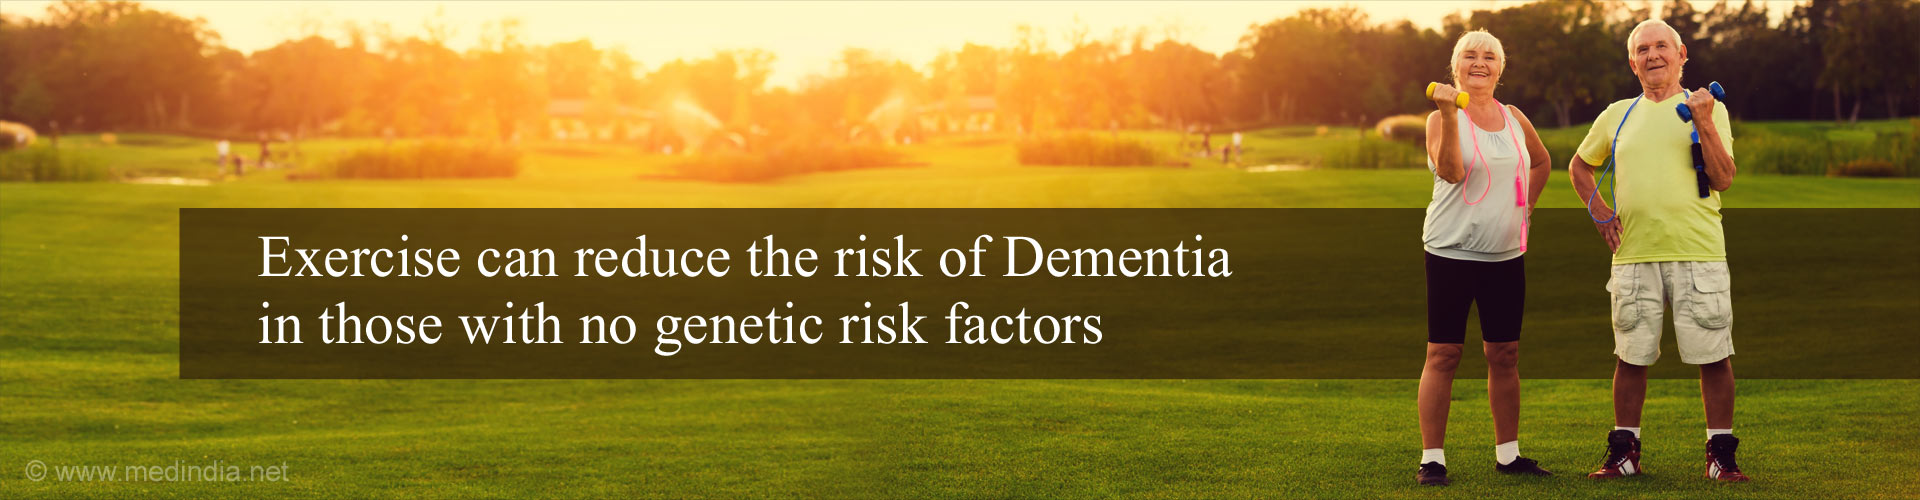 Physical Inactivity Increases Risk of Dementia as Those With Genetic Risk Factors